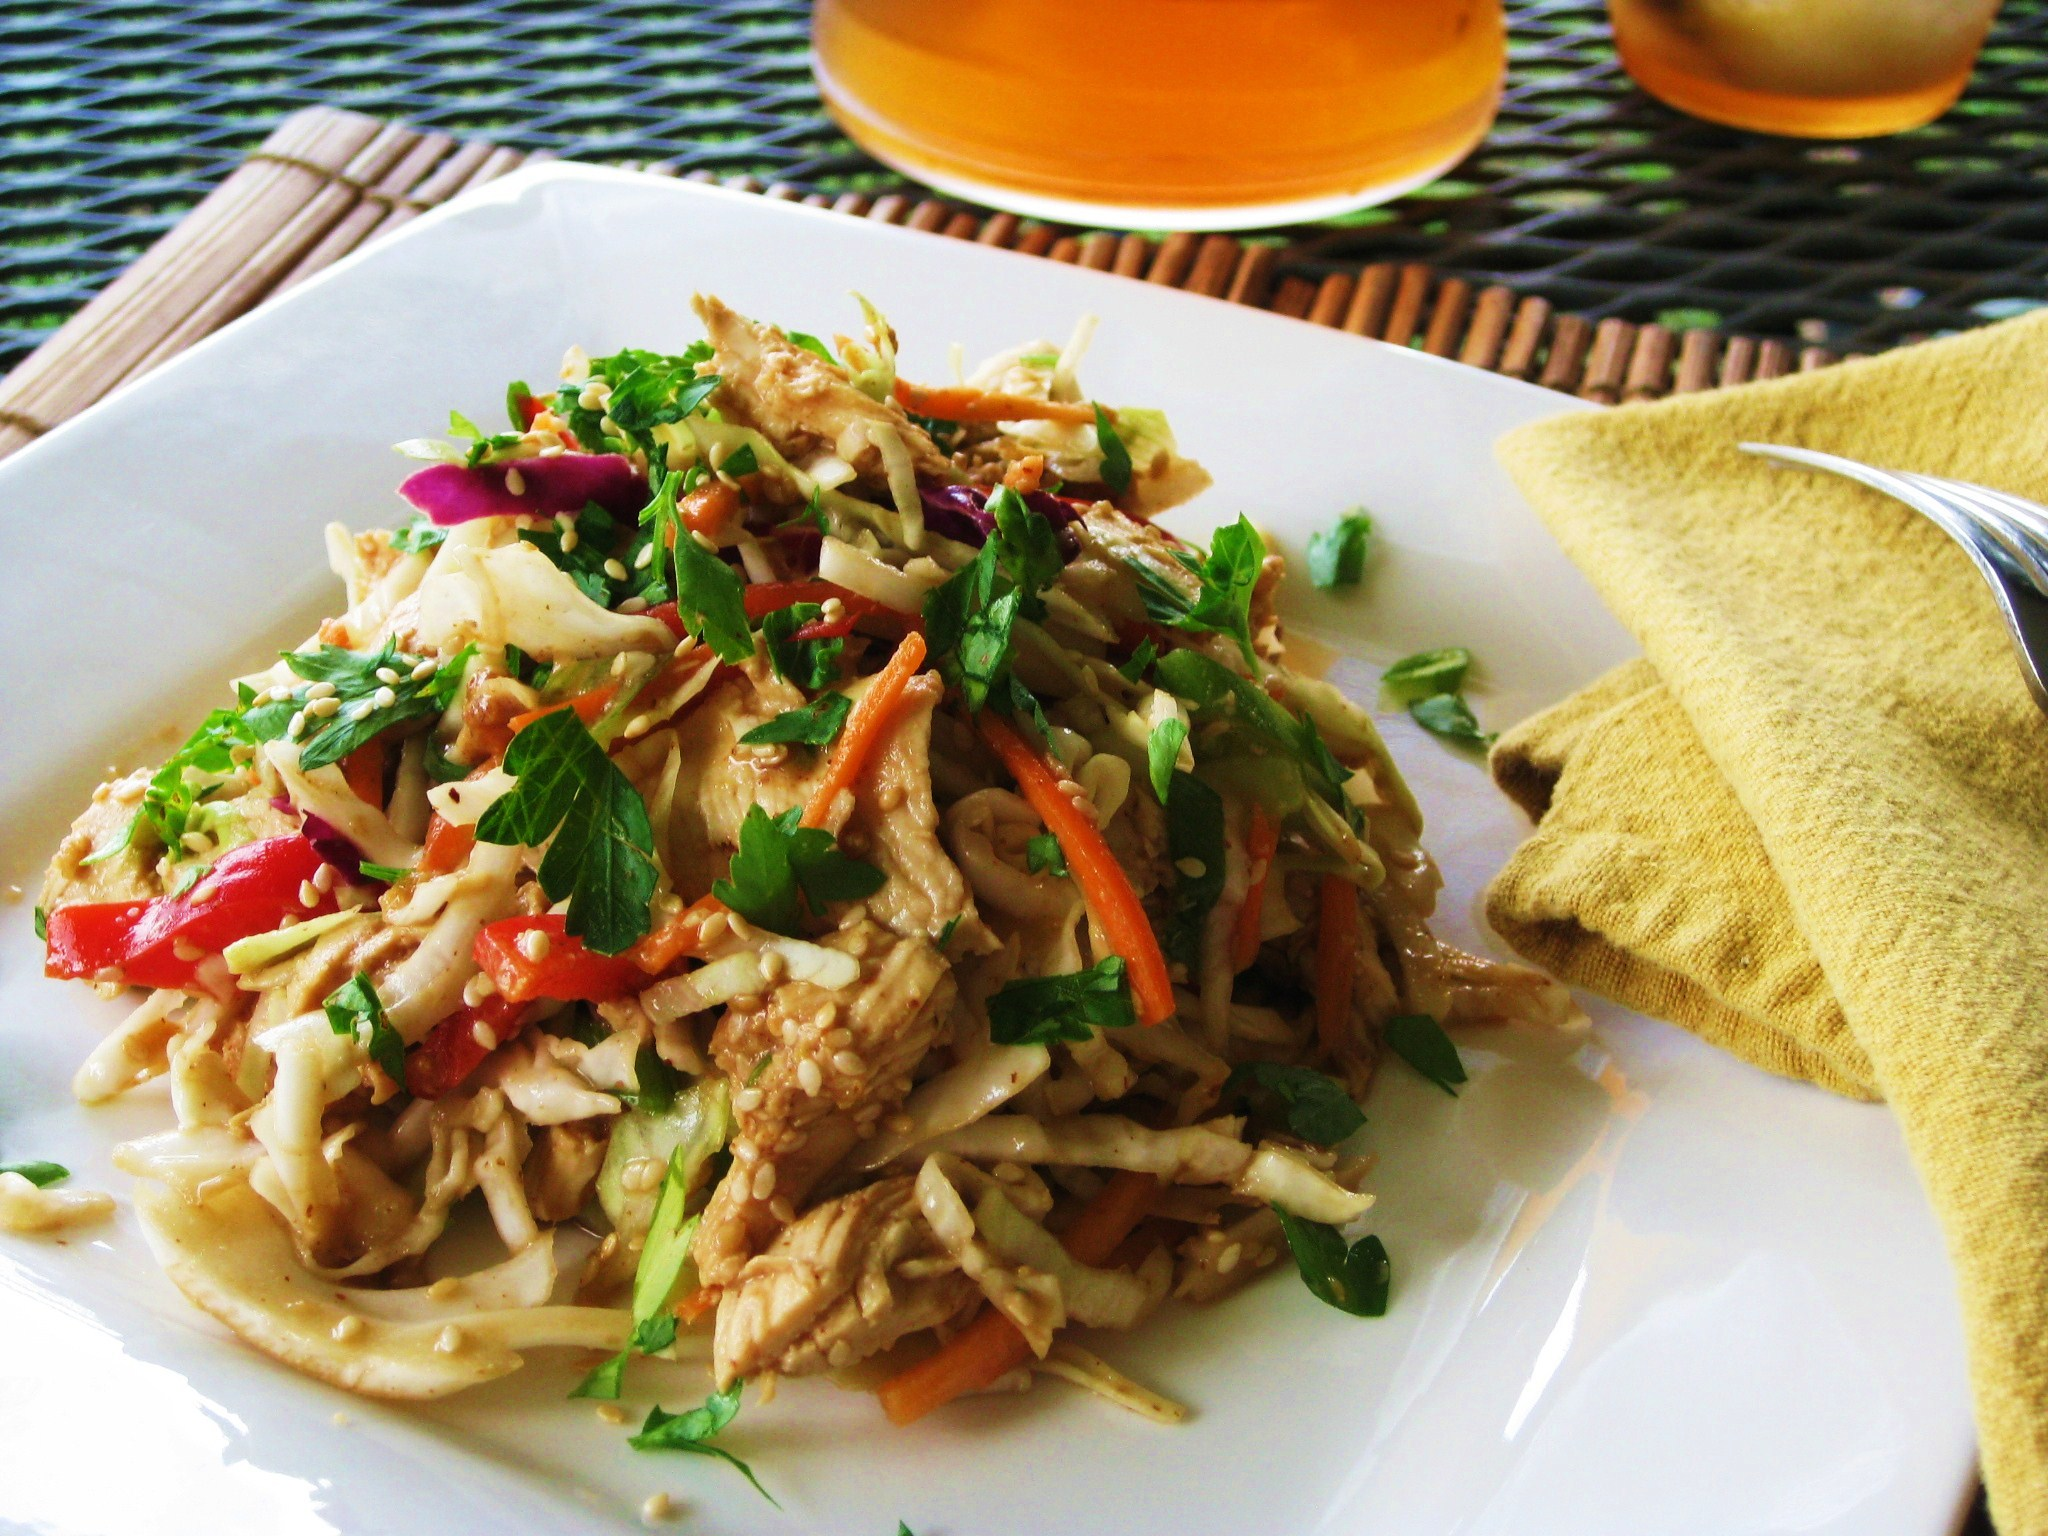 Shredded Asian Chicken Salad – Savoring Every Bite